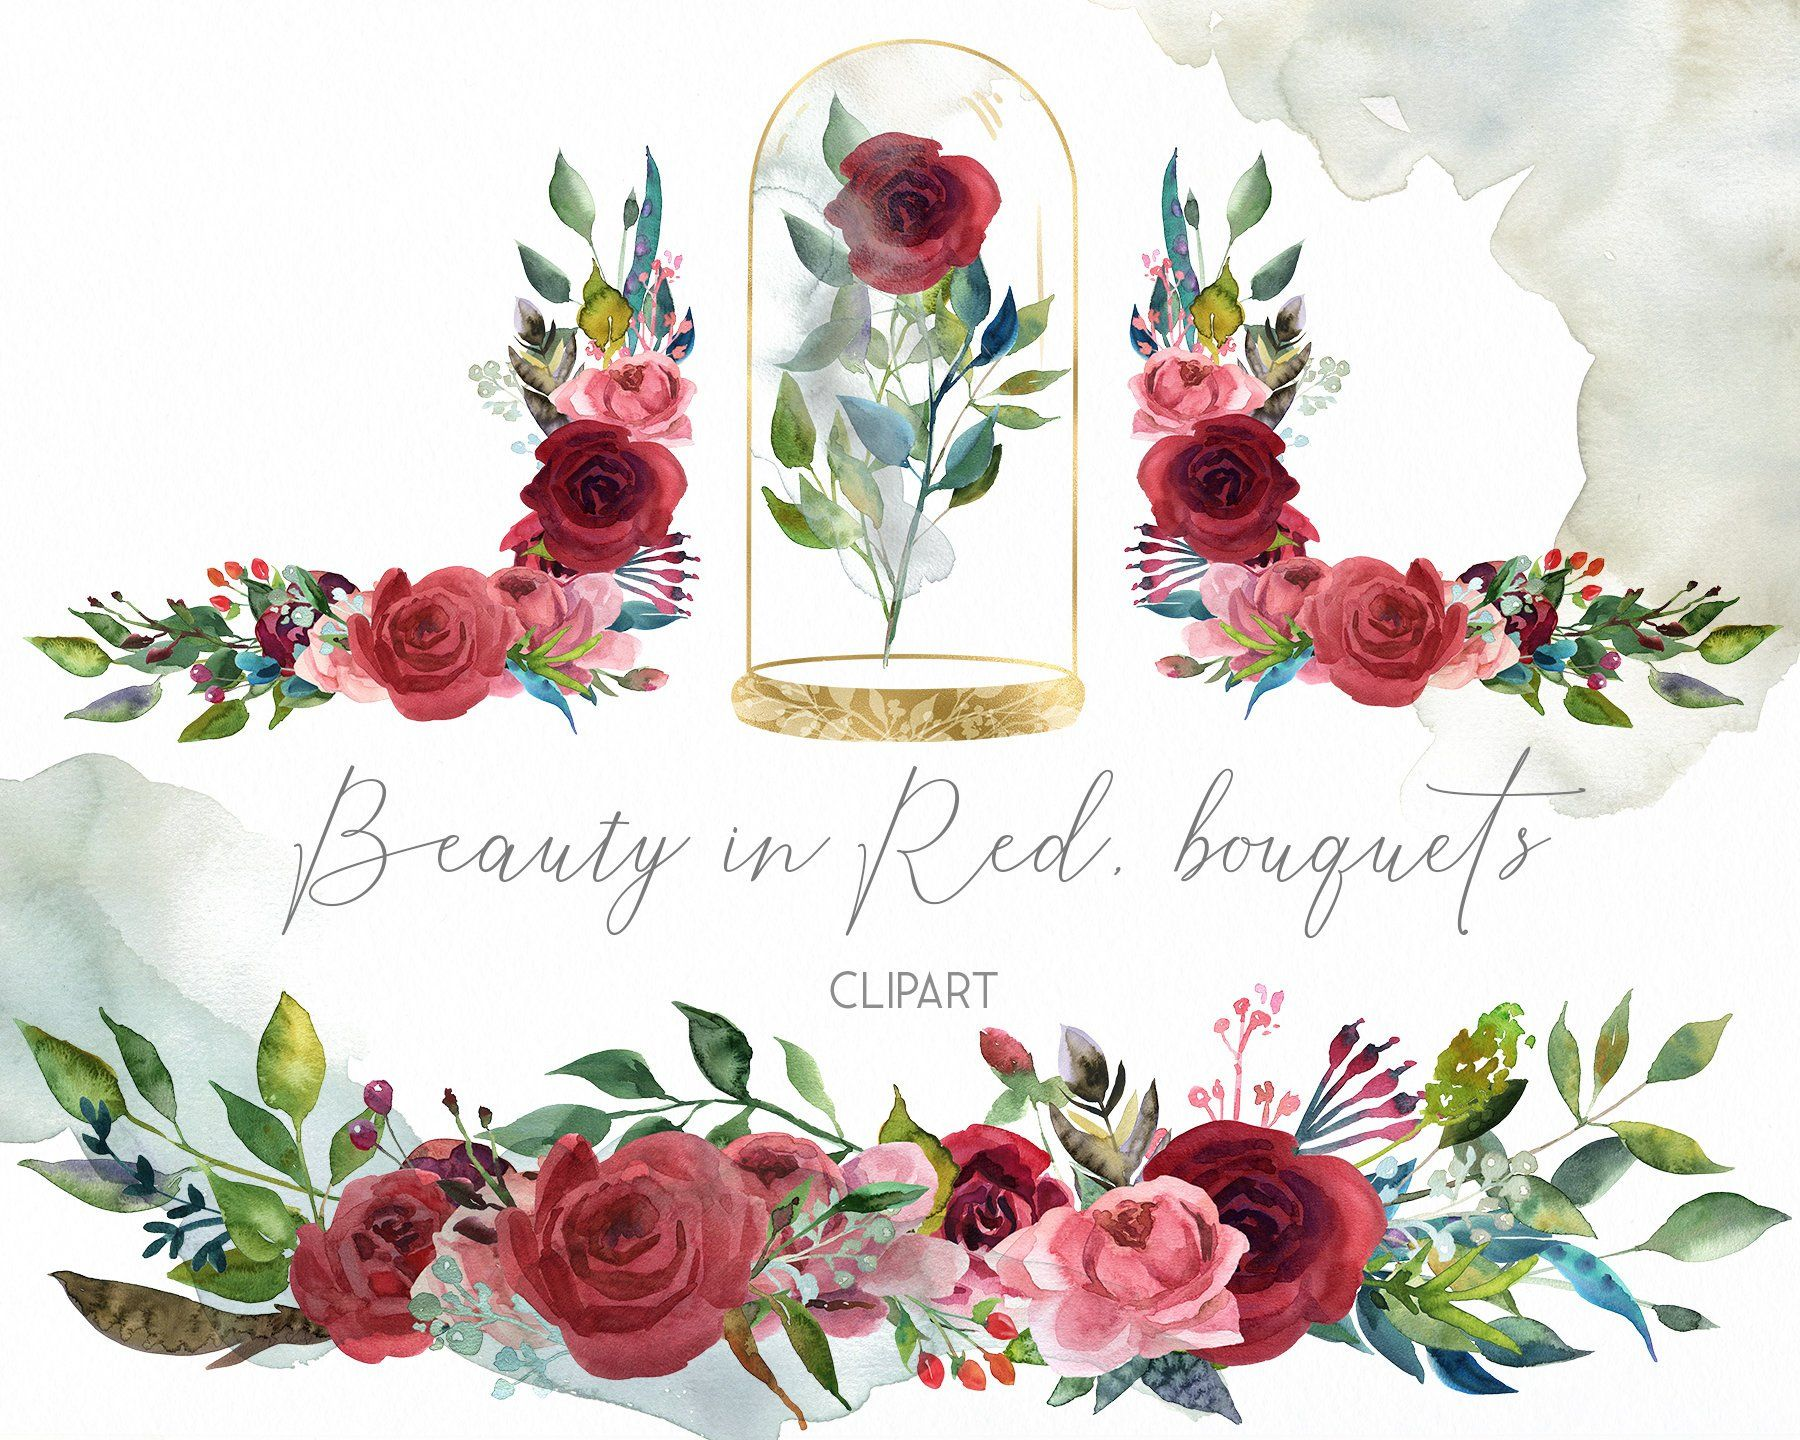 Watercolor red roses wedding composition clipart, marsala.